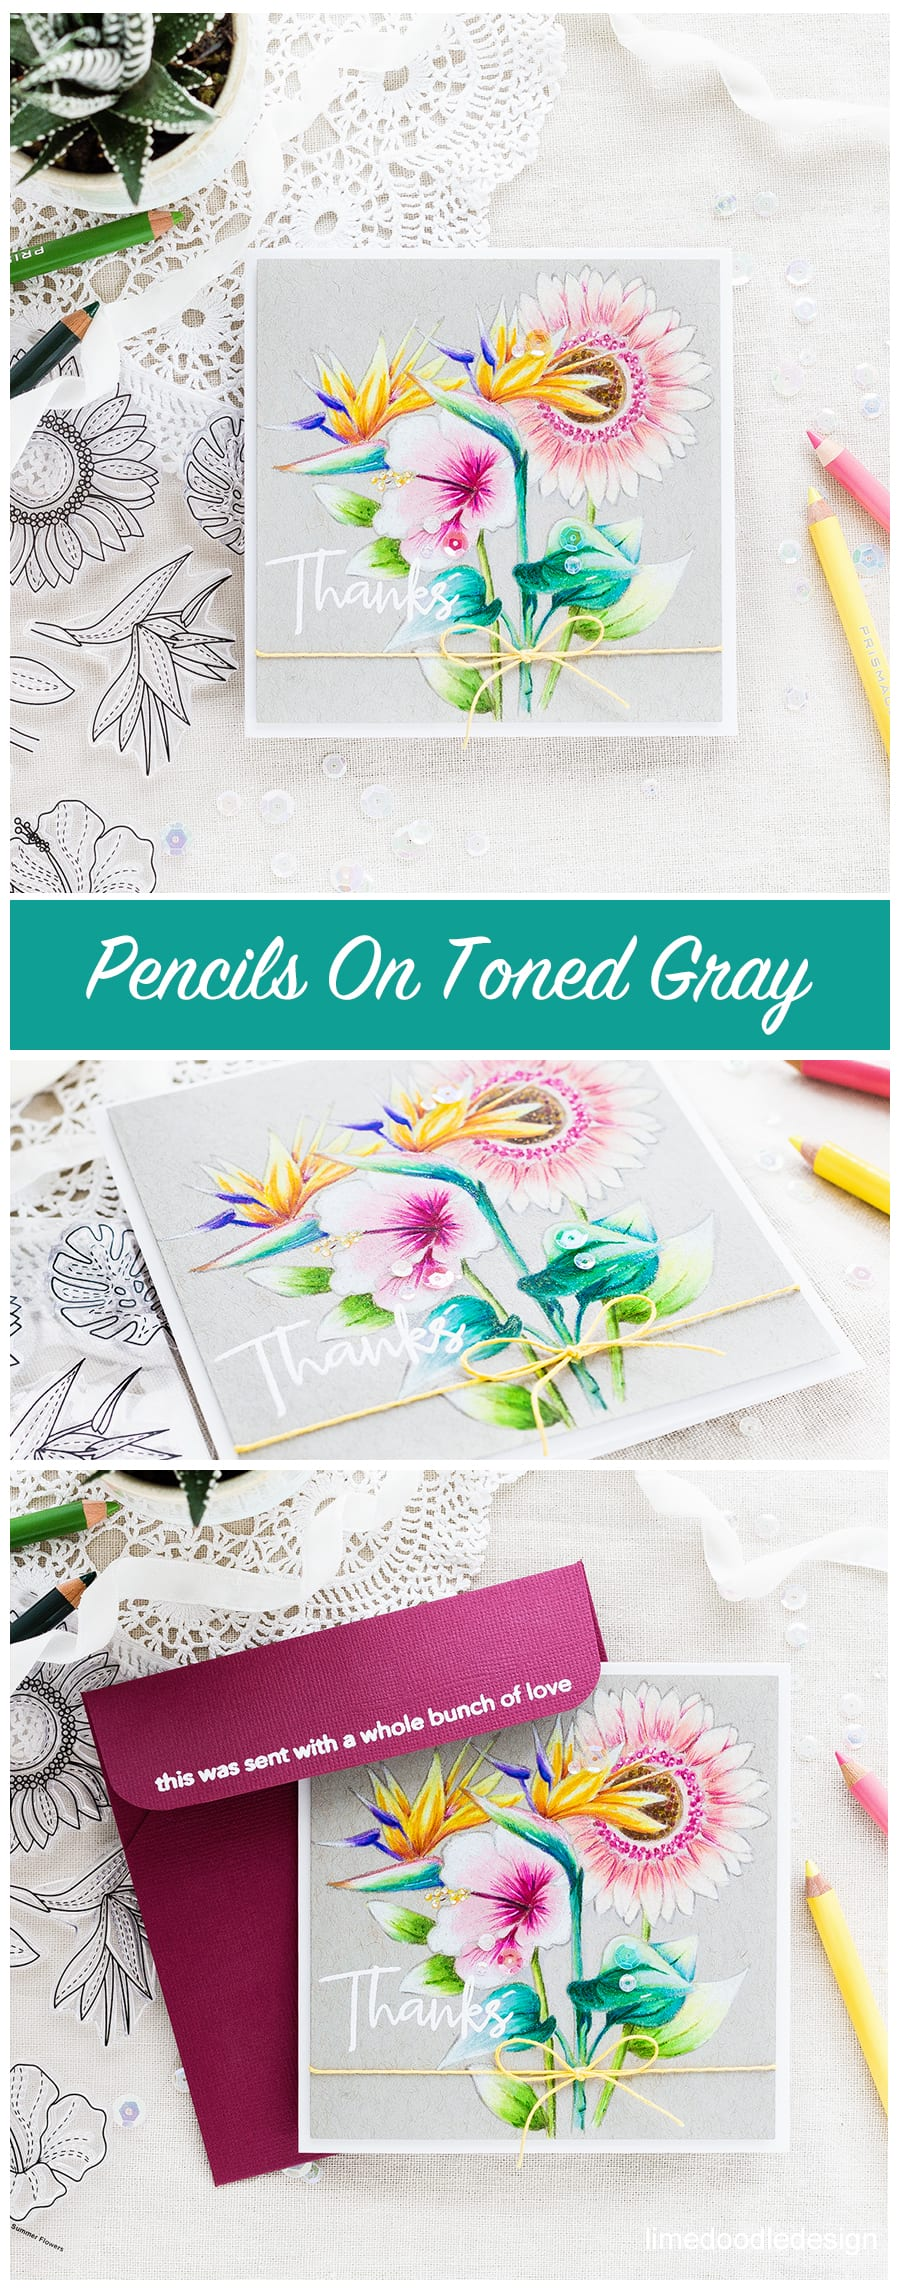 Pencil colouring Summer Flowers by Debby Hughes. Find out more about this summer flowers thanks card by clicking on the following link: https://limedoodledesign.com/2017/05/simon-says-stamp-cherished-release-blog-hop-giveaway/